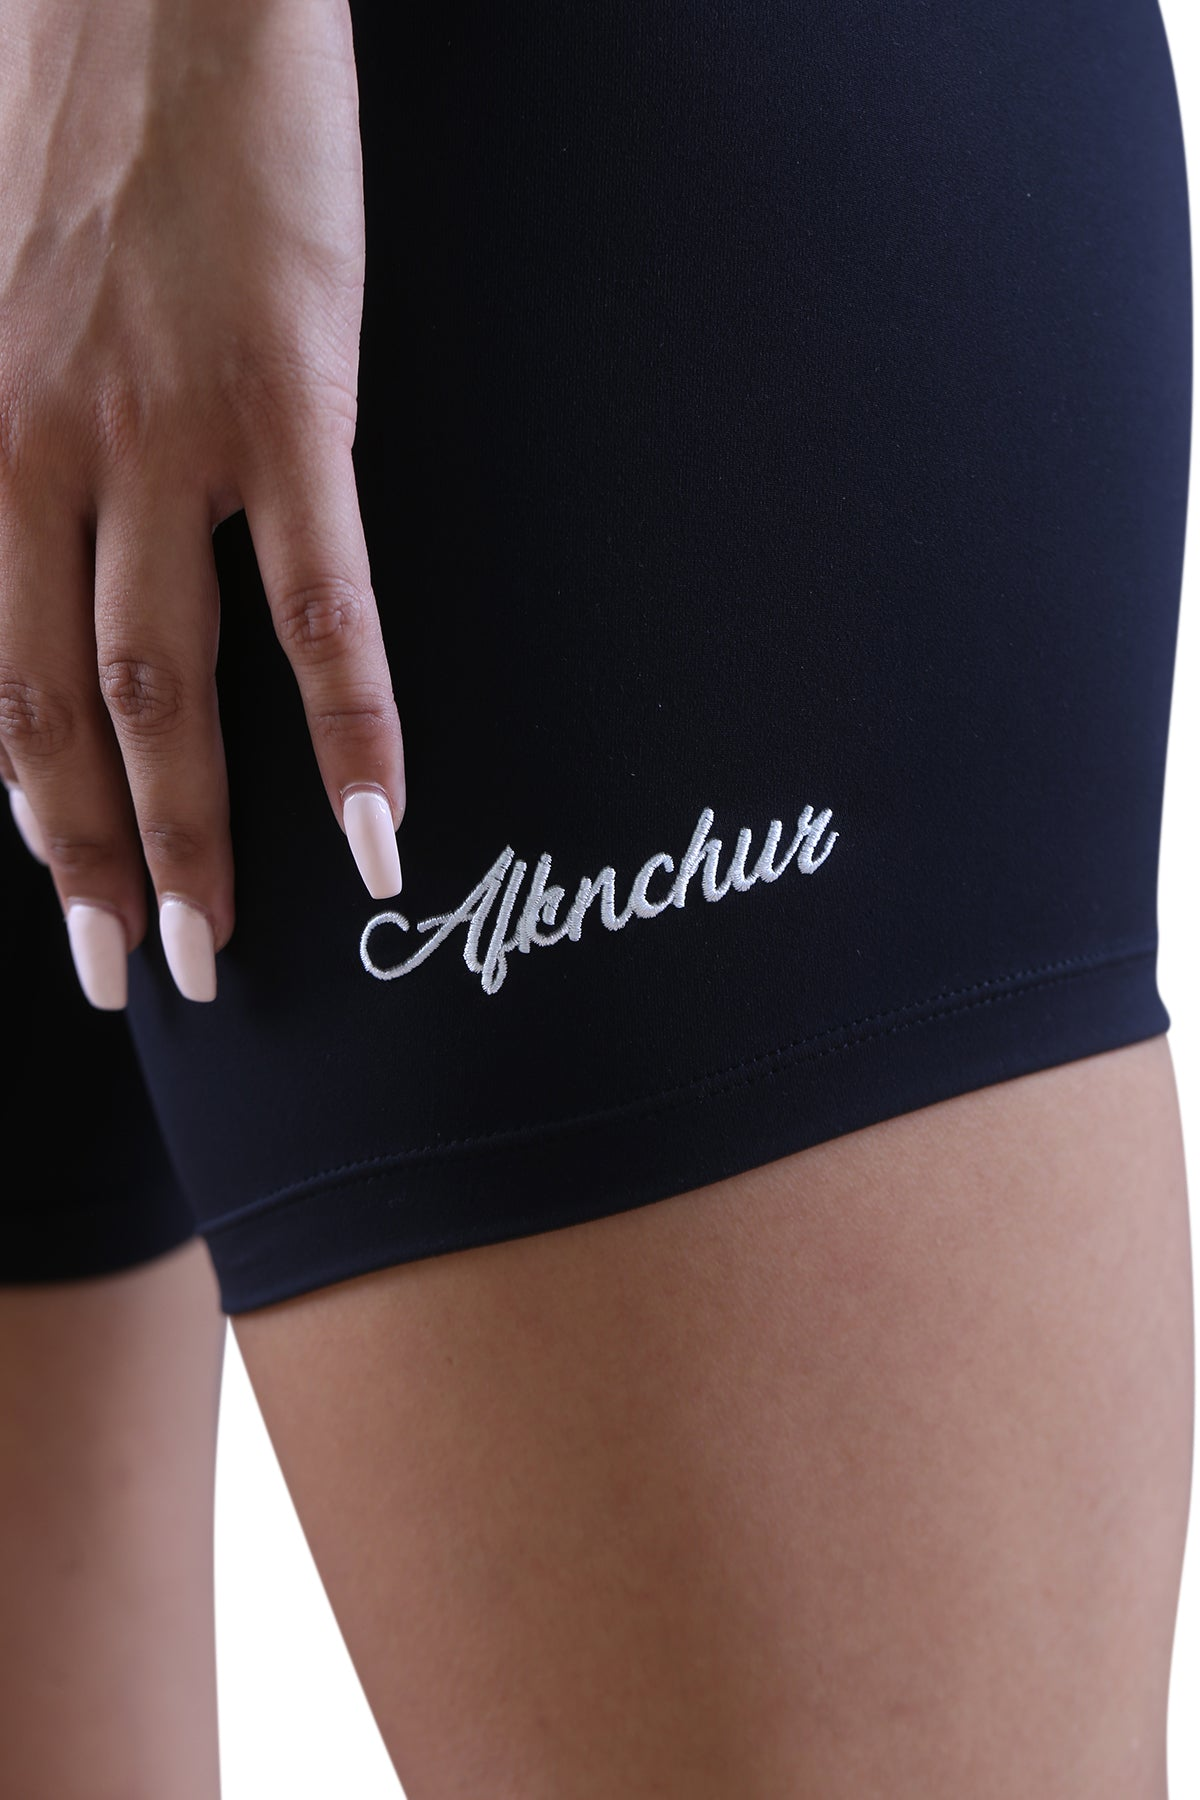 AFKNCHUR Womens Bike Shorts Black